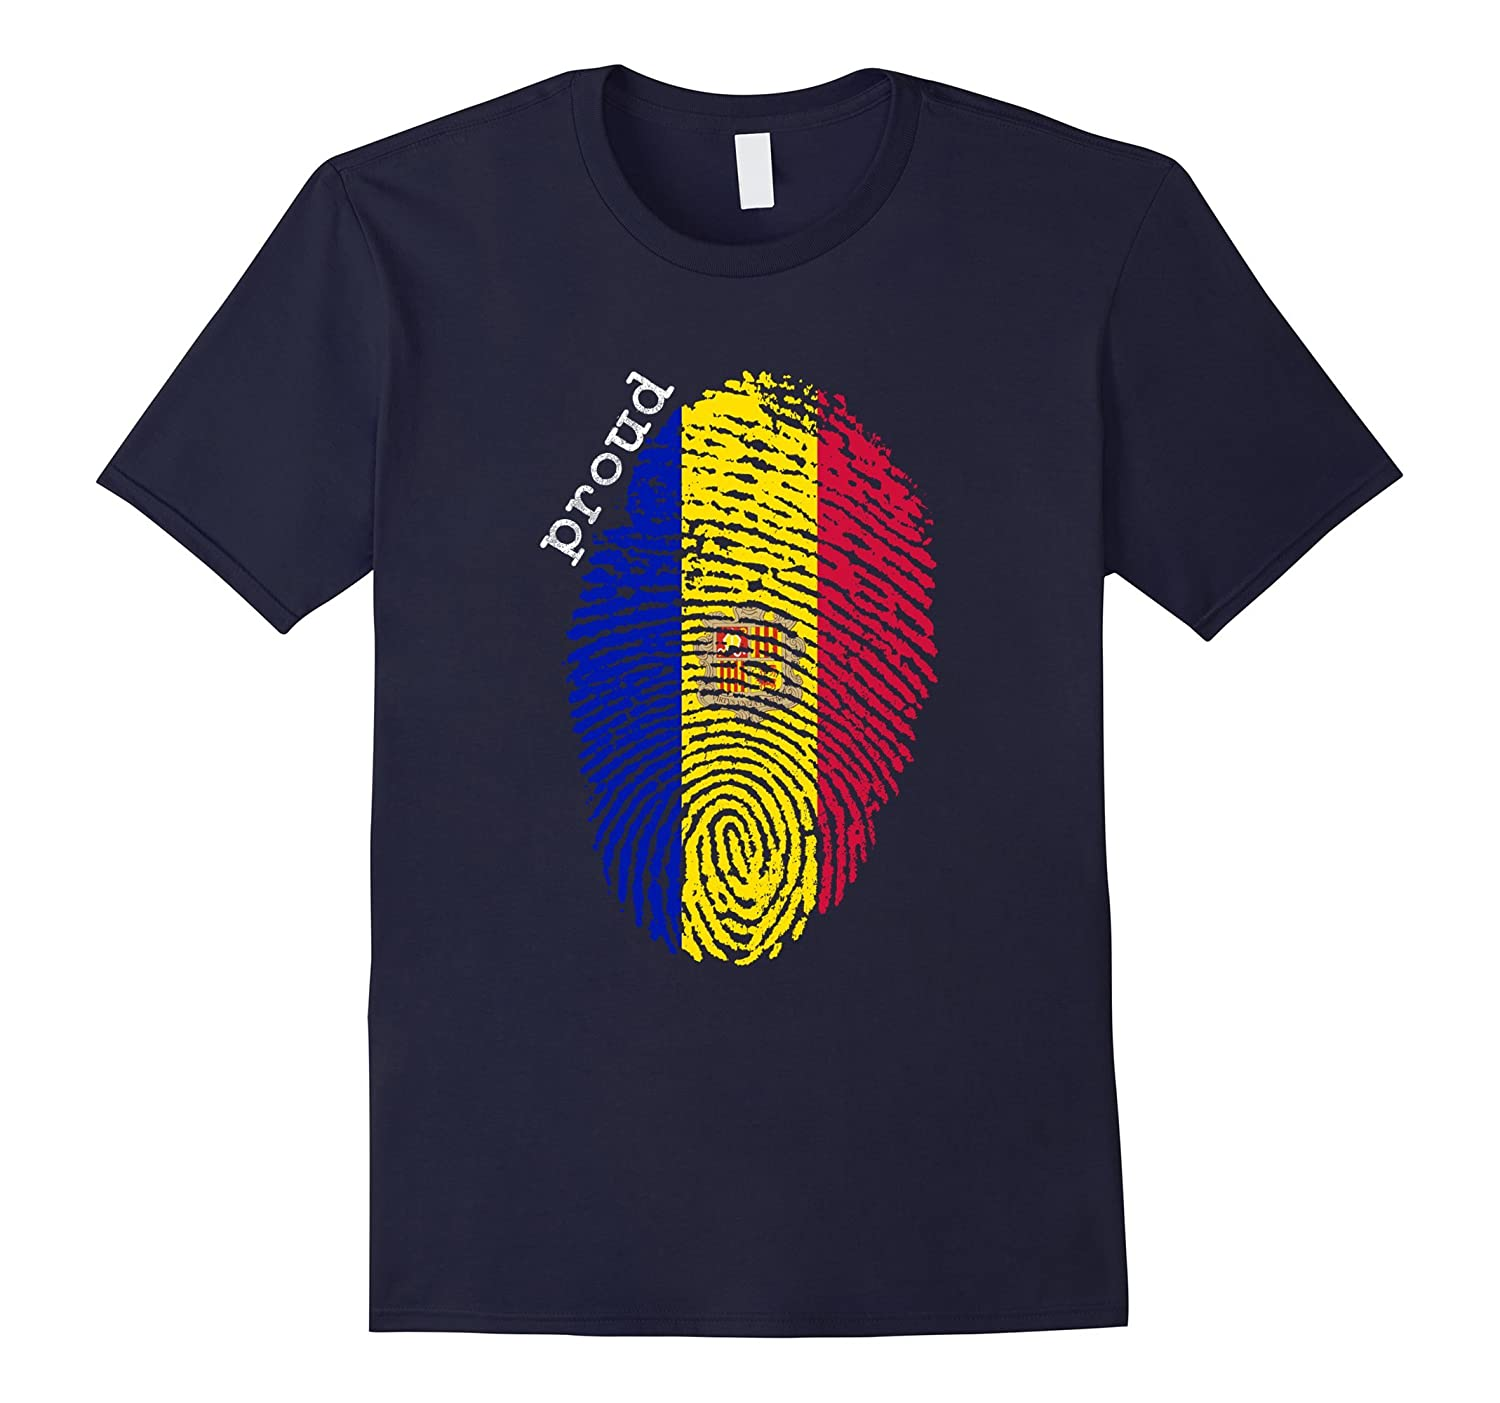 Andorra flag t-shirt - Andorra National Flag-TD